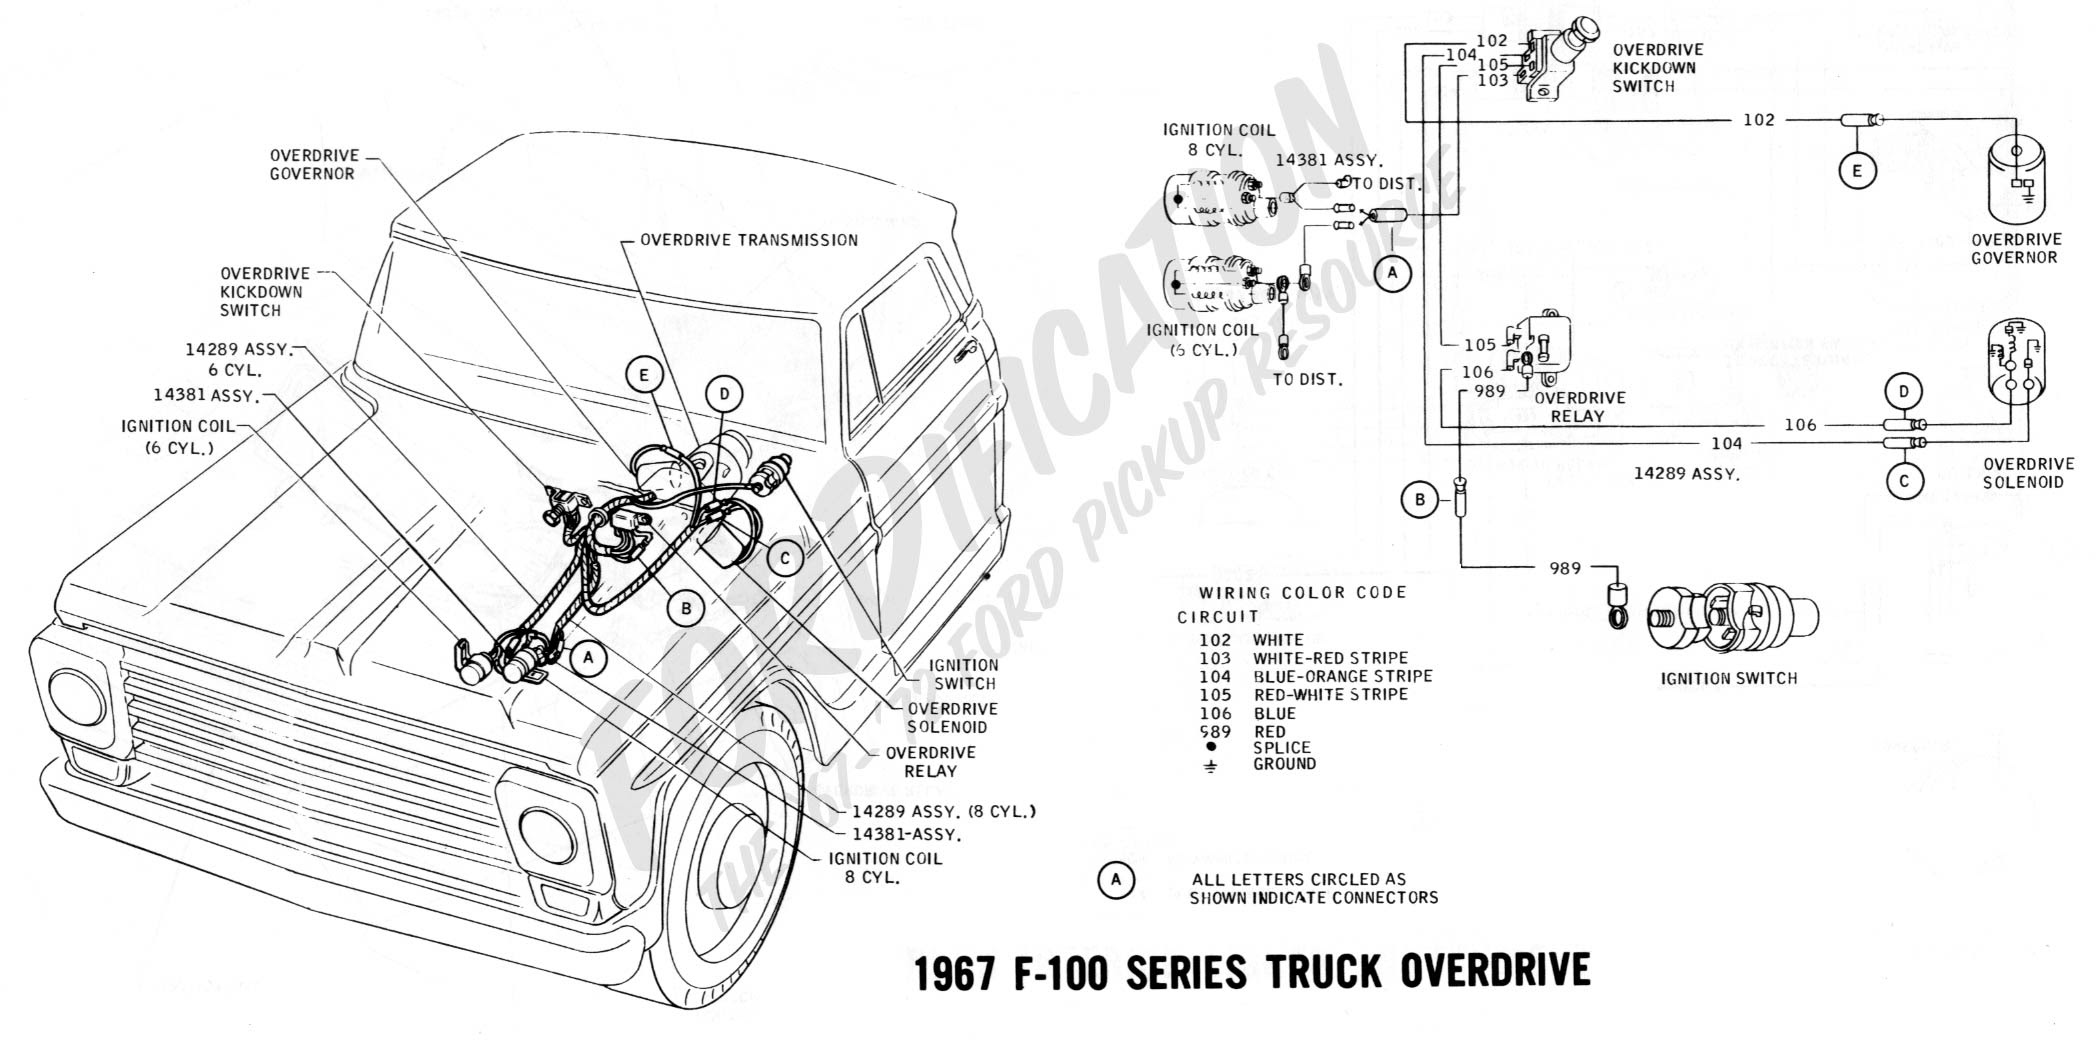 Wiring Diagram 2001 F250 6 8 Wiring Diagrams Journal Journal Miglioribanche It